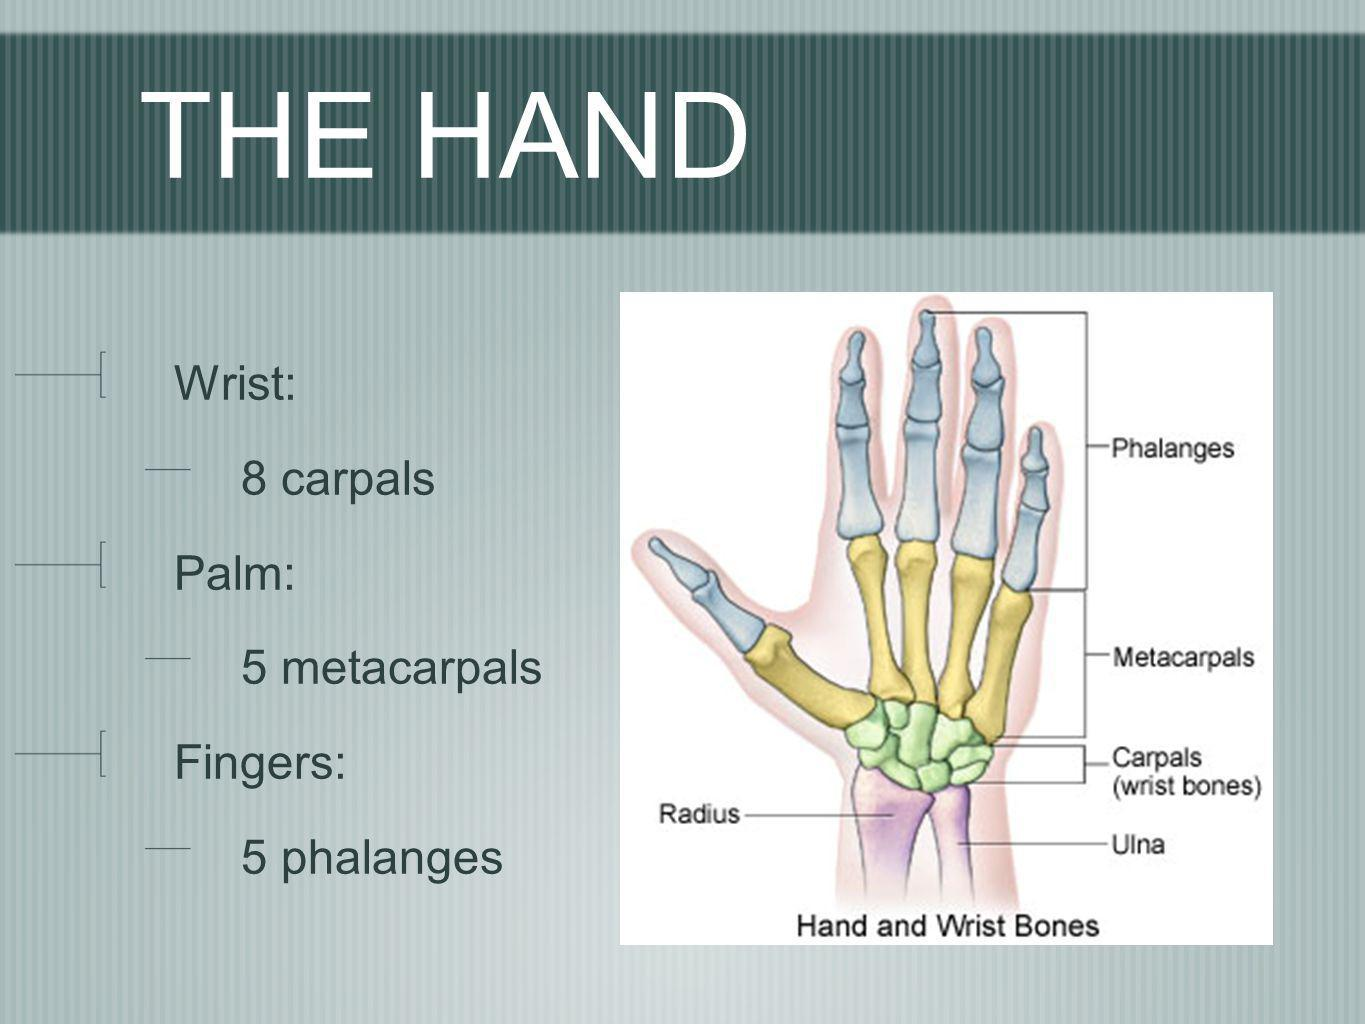 THE HAND Wrist: 8 carpals Palm: 5 metacarpals Fingers: 5 phalanges